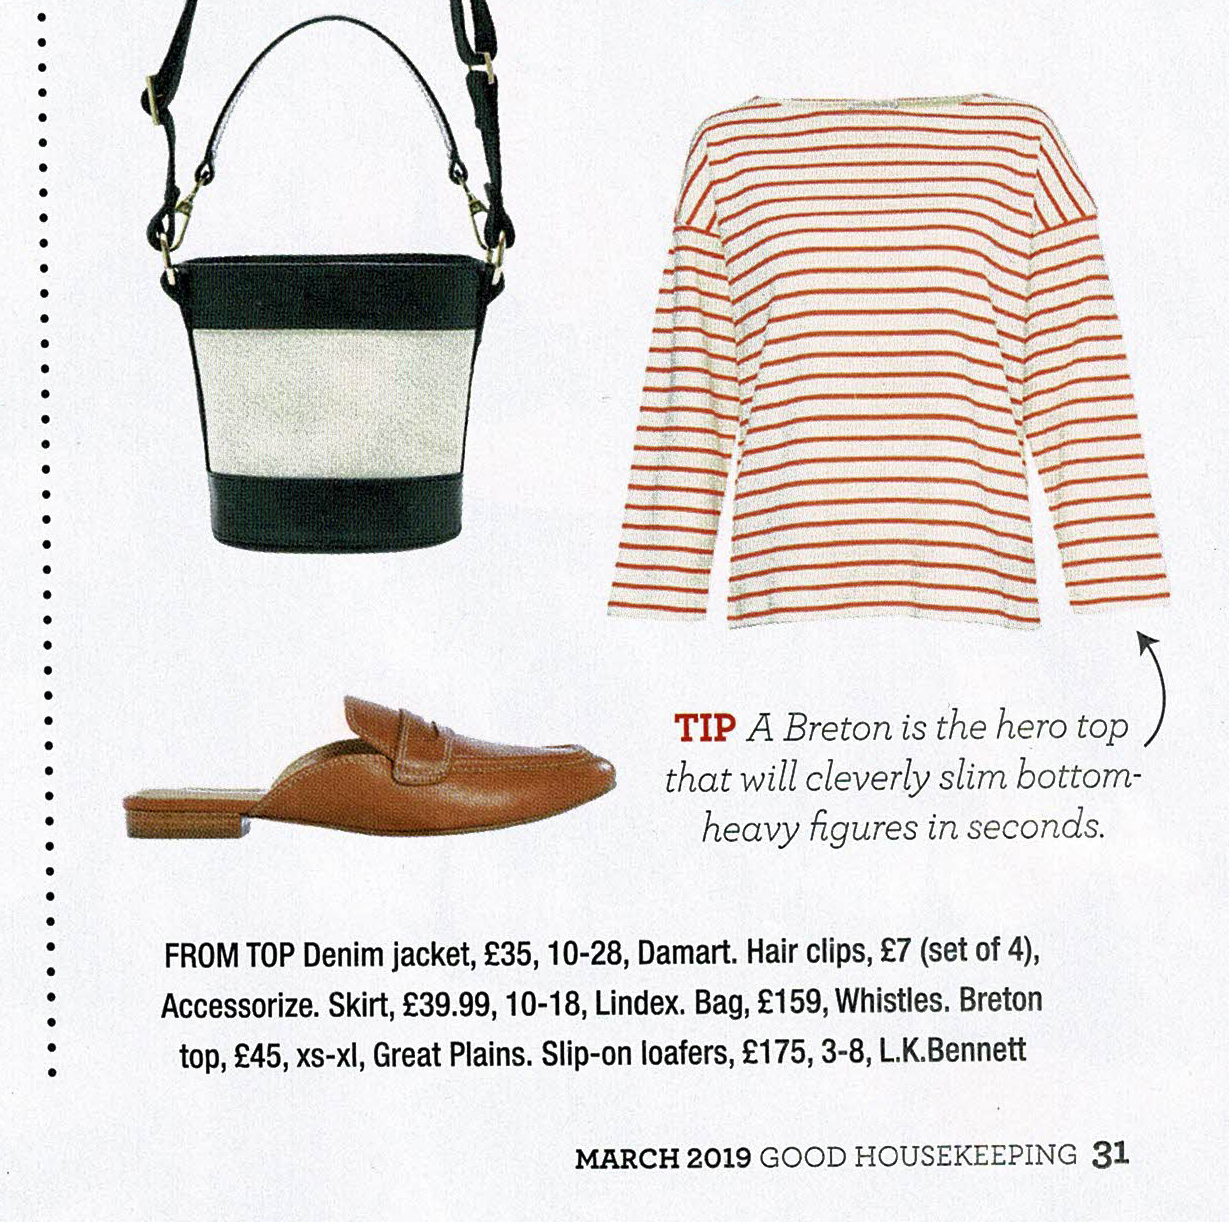 Great Plains Breton Top in Good Housekeeping